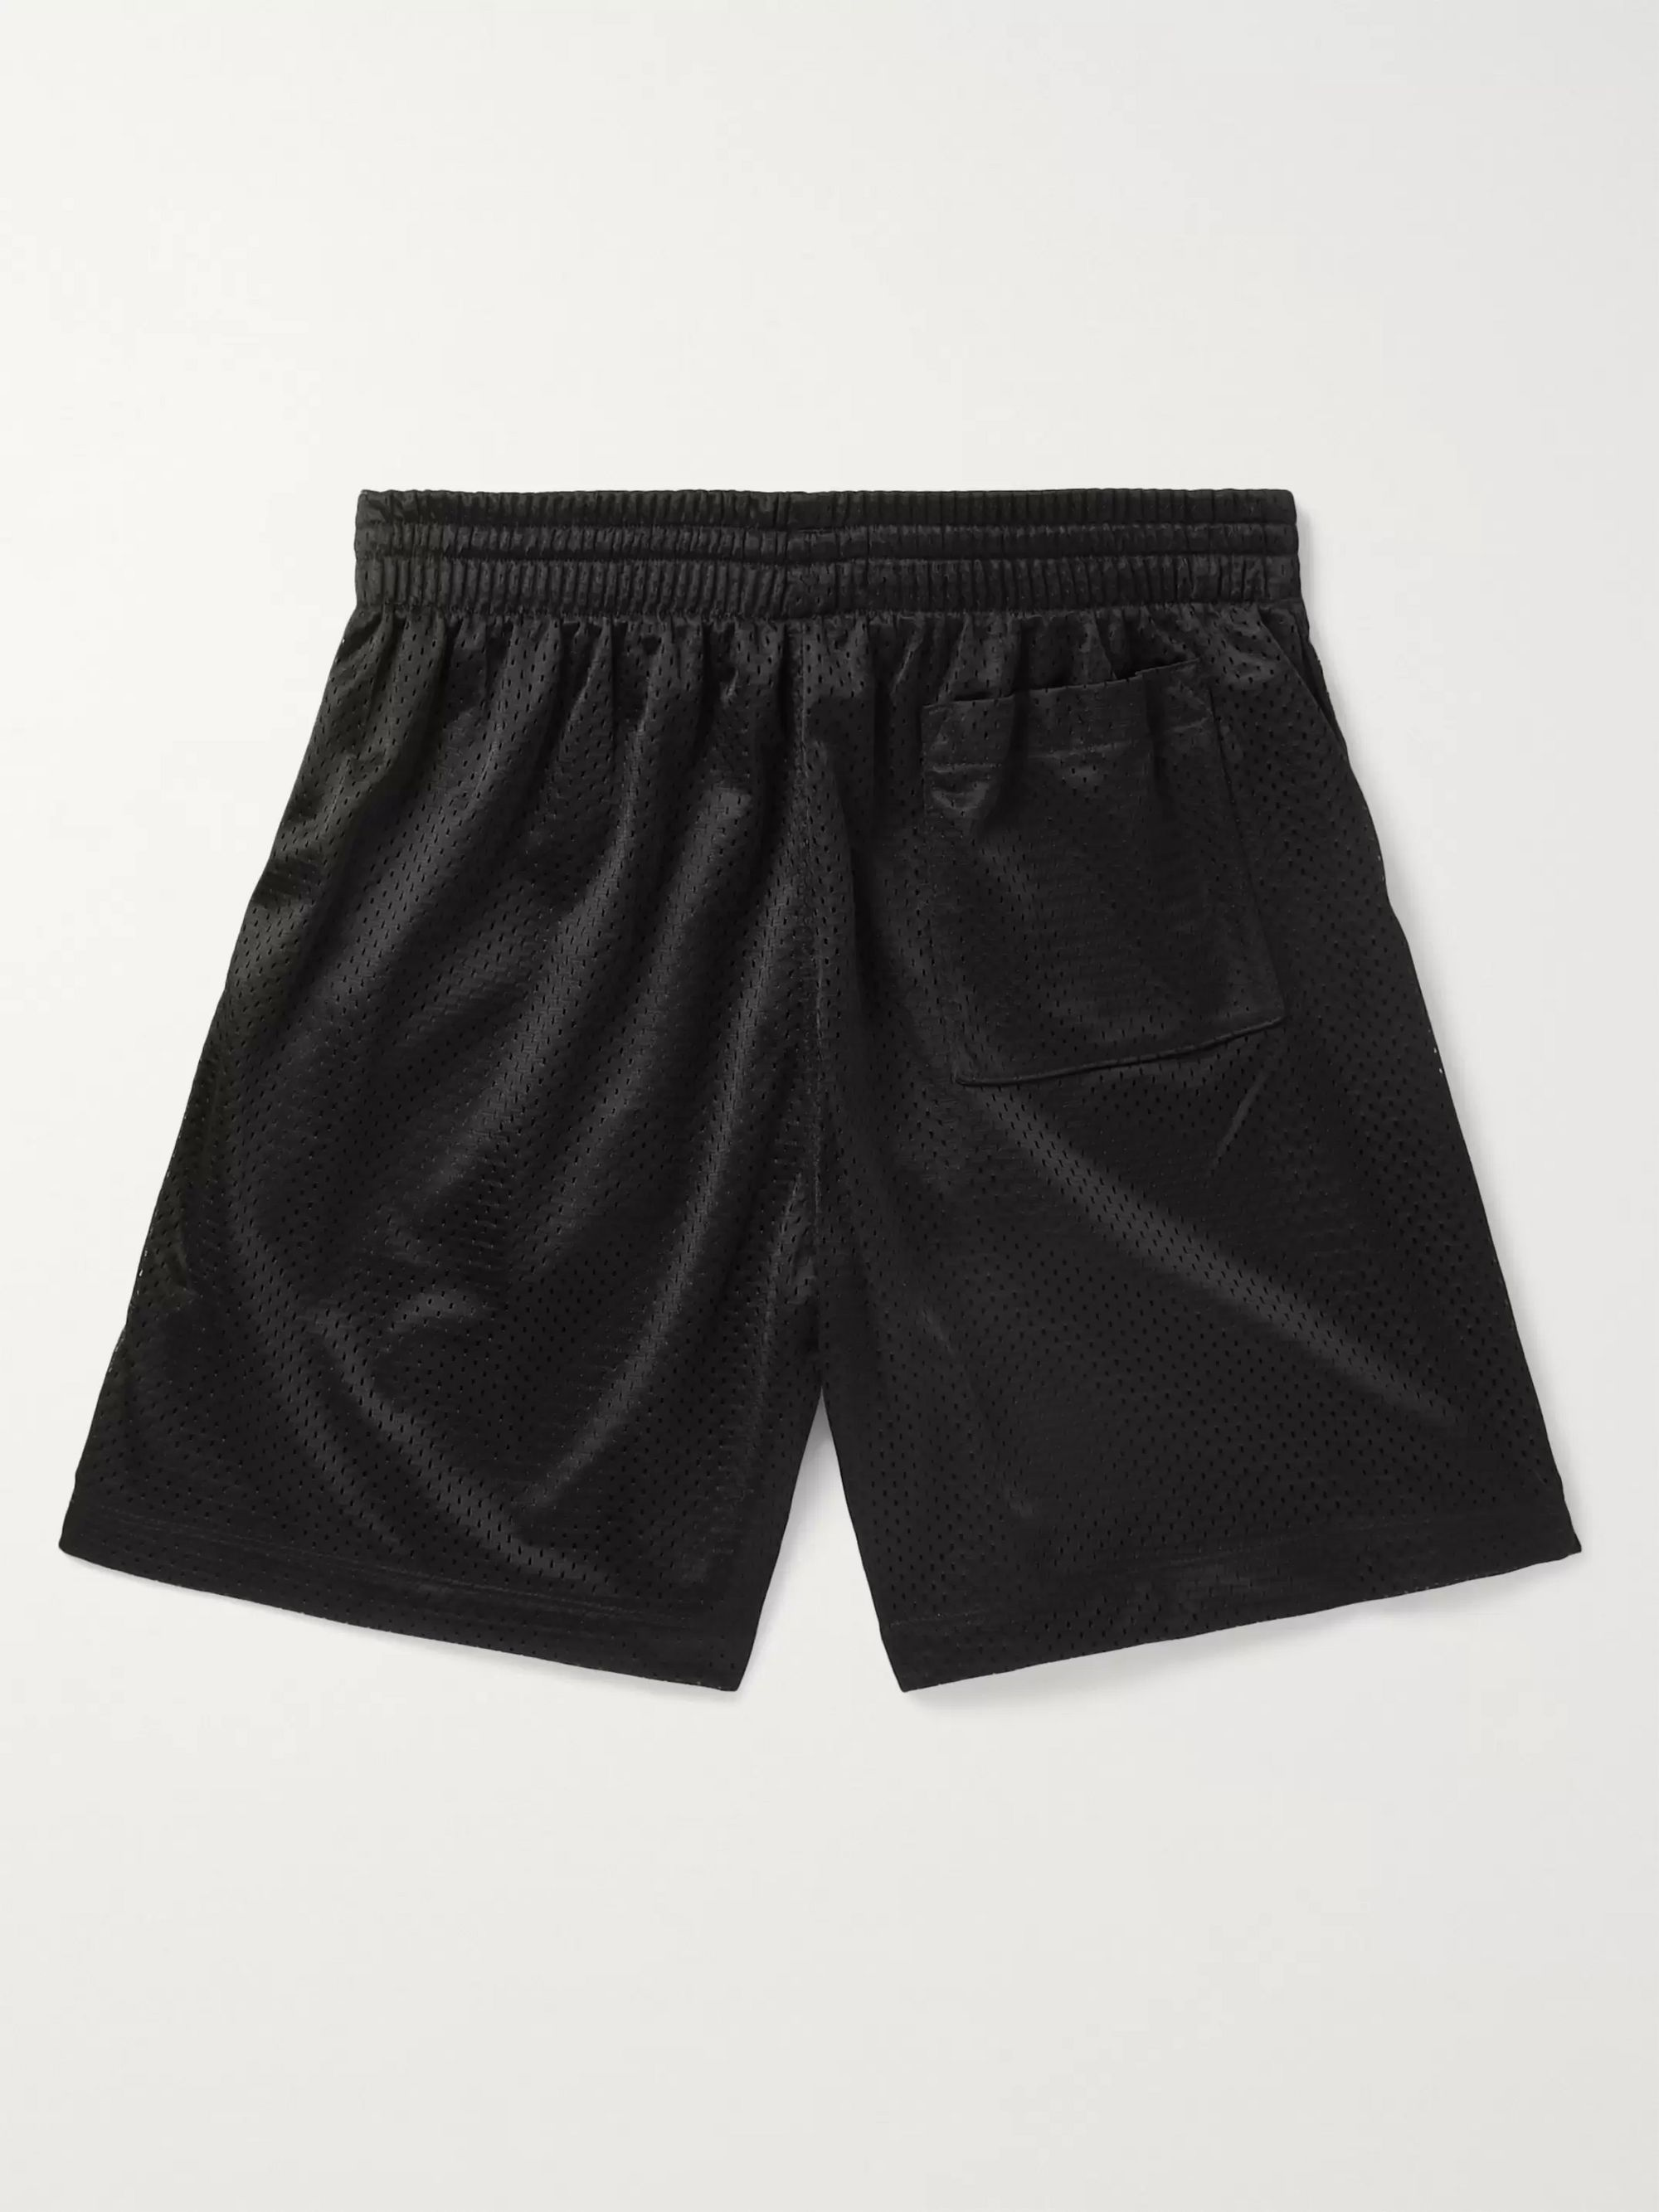 Pasadena Leisure Club Wide-Leg Logo-Appliquéd Mesh Drawstring Shorts